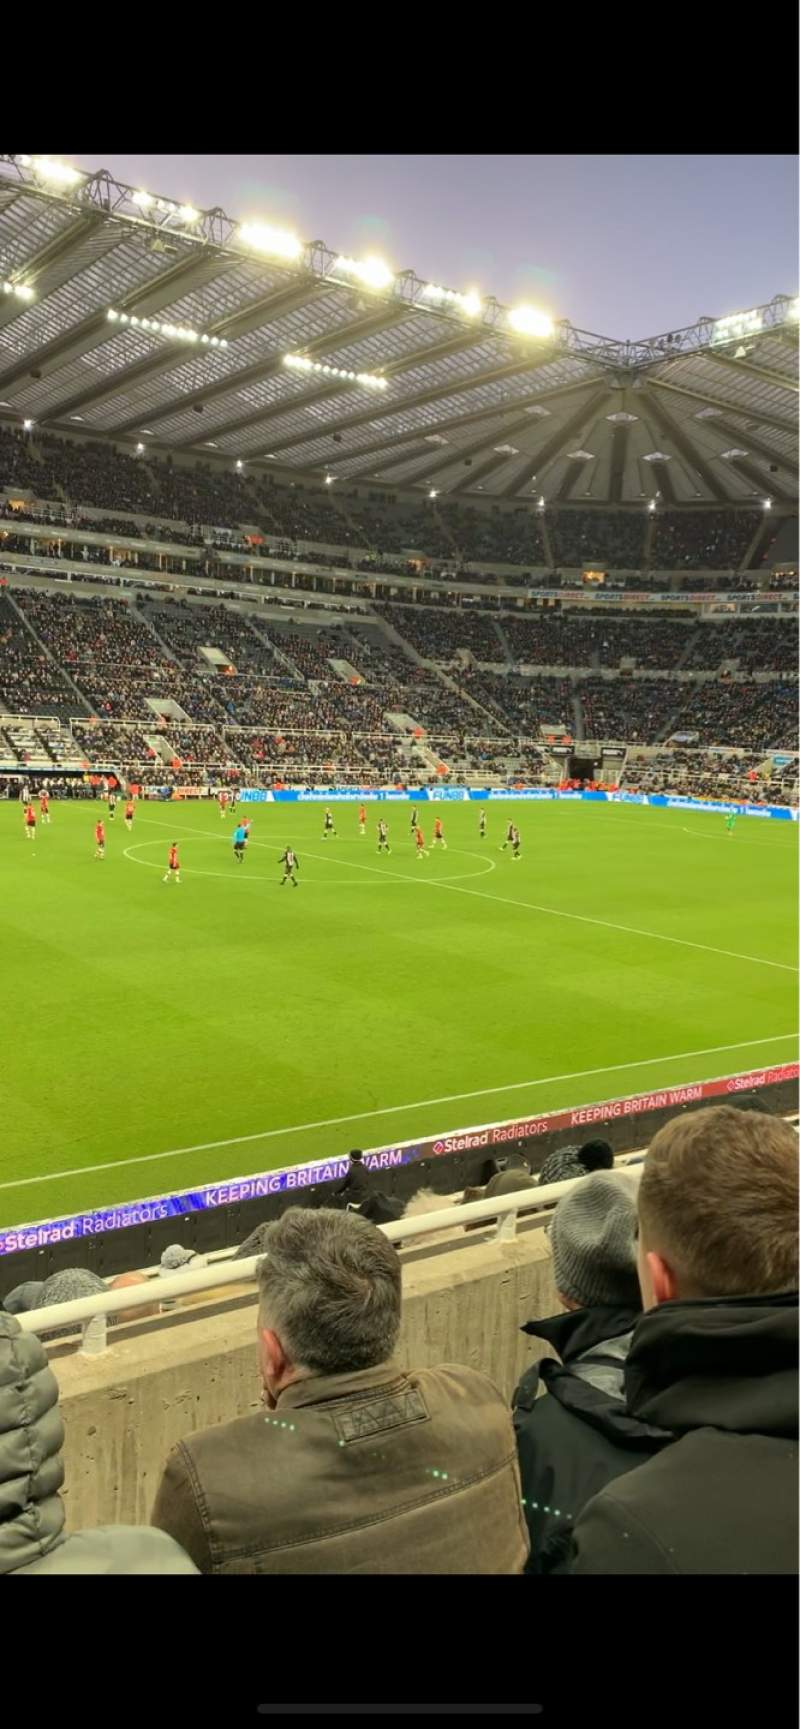 Seating view for St James' Park Section L Row C Seat 163